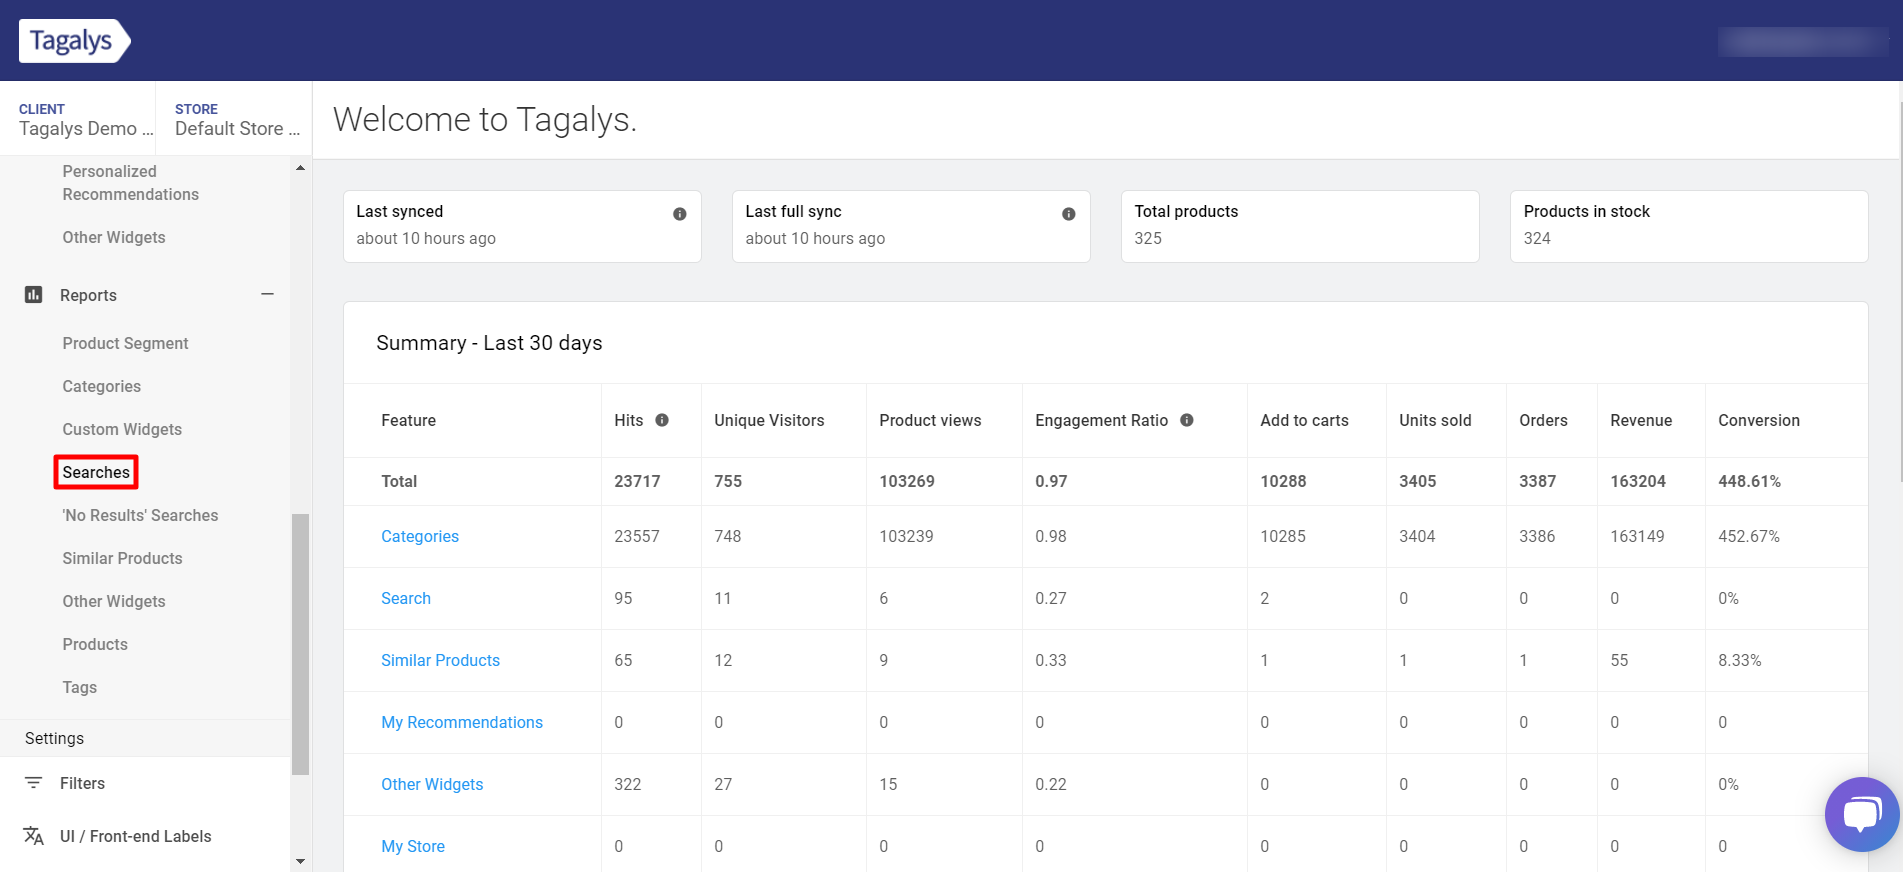 Download reports from Tagalys Dashboard